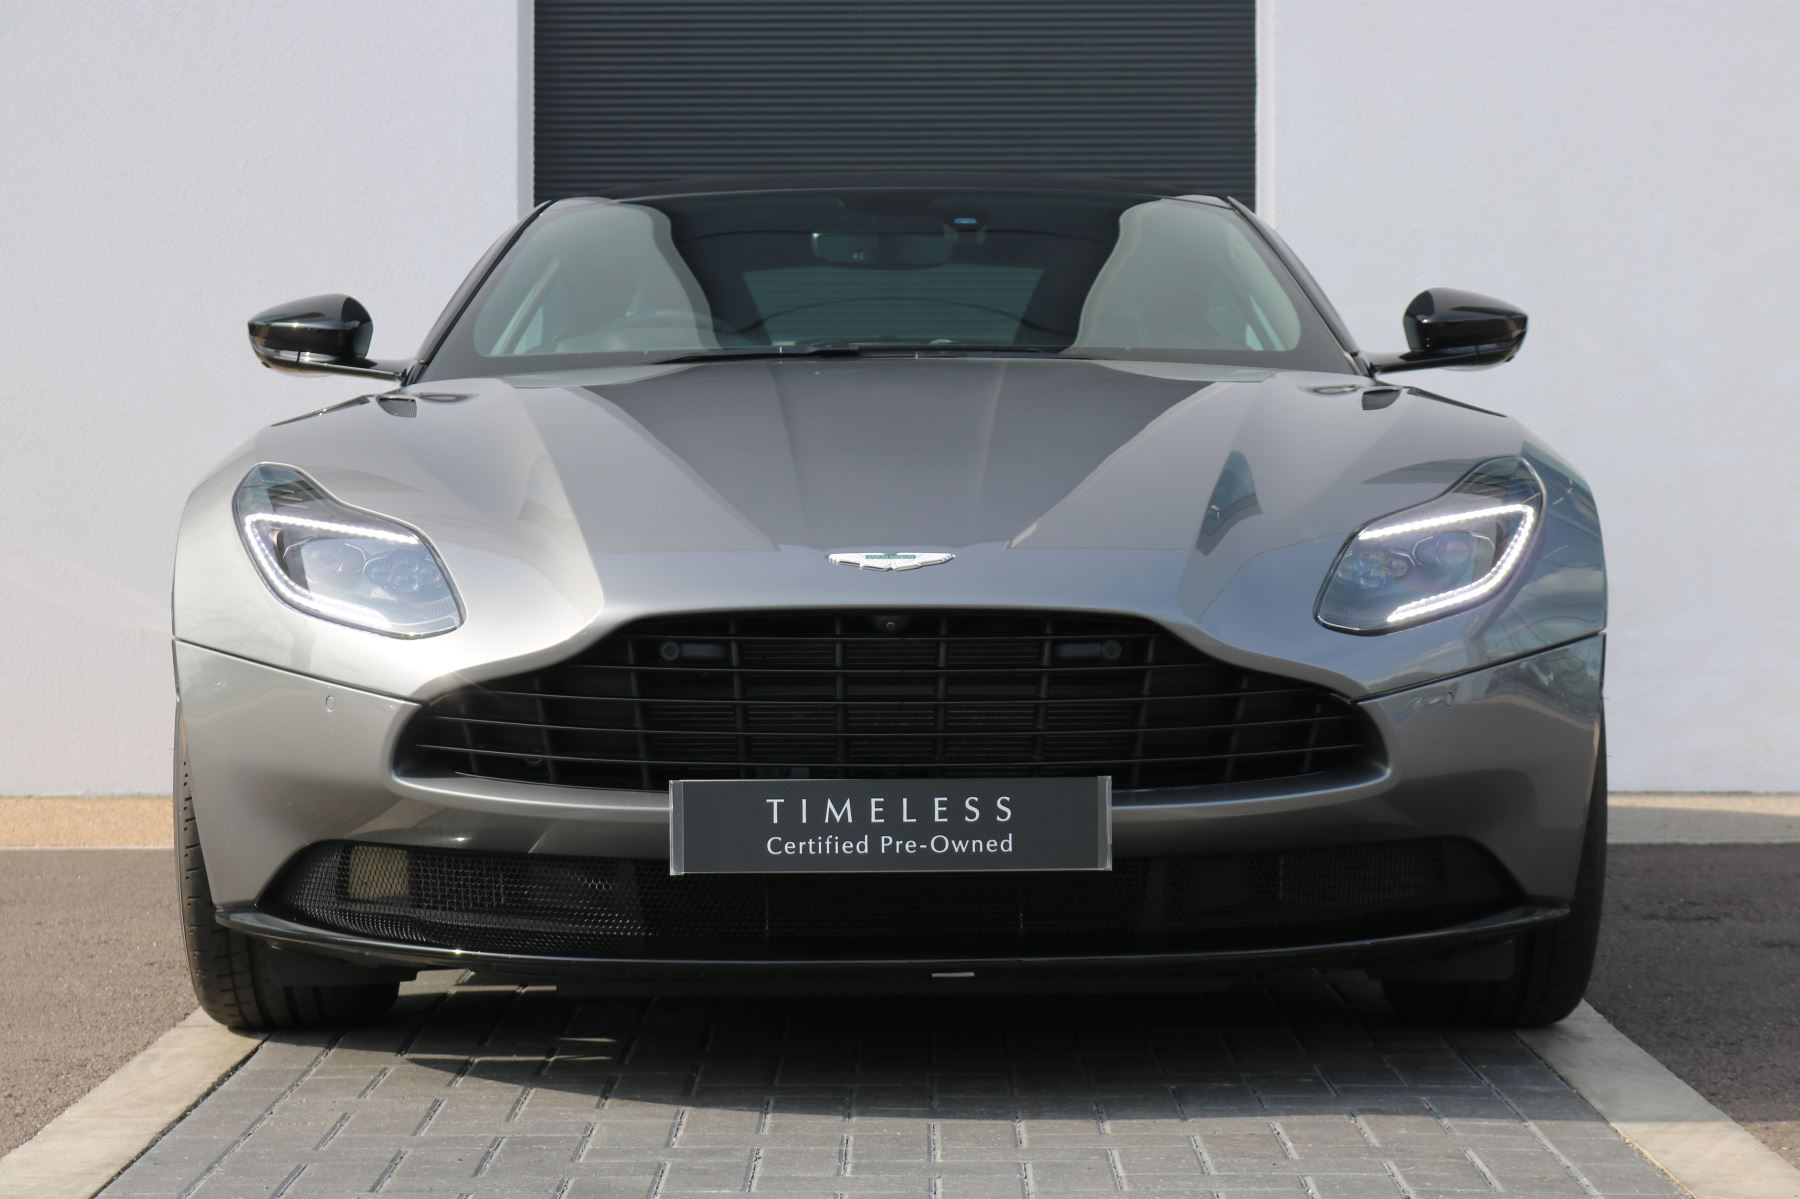 Aston Martin DB11 V8 2dr Touchtronic 4.0 Automatic 3 door Coupe (2019) image